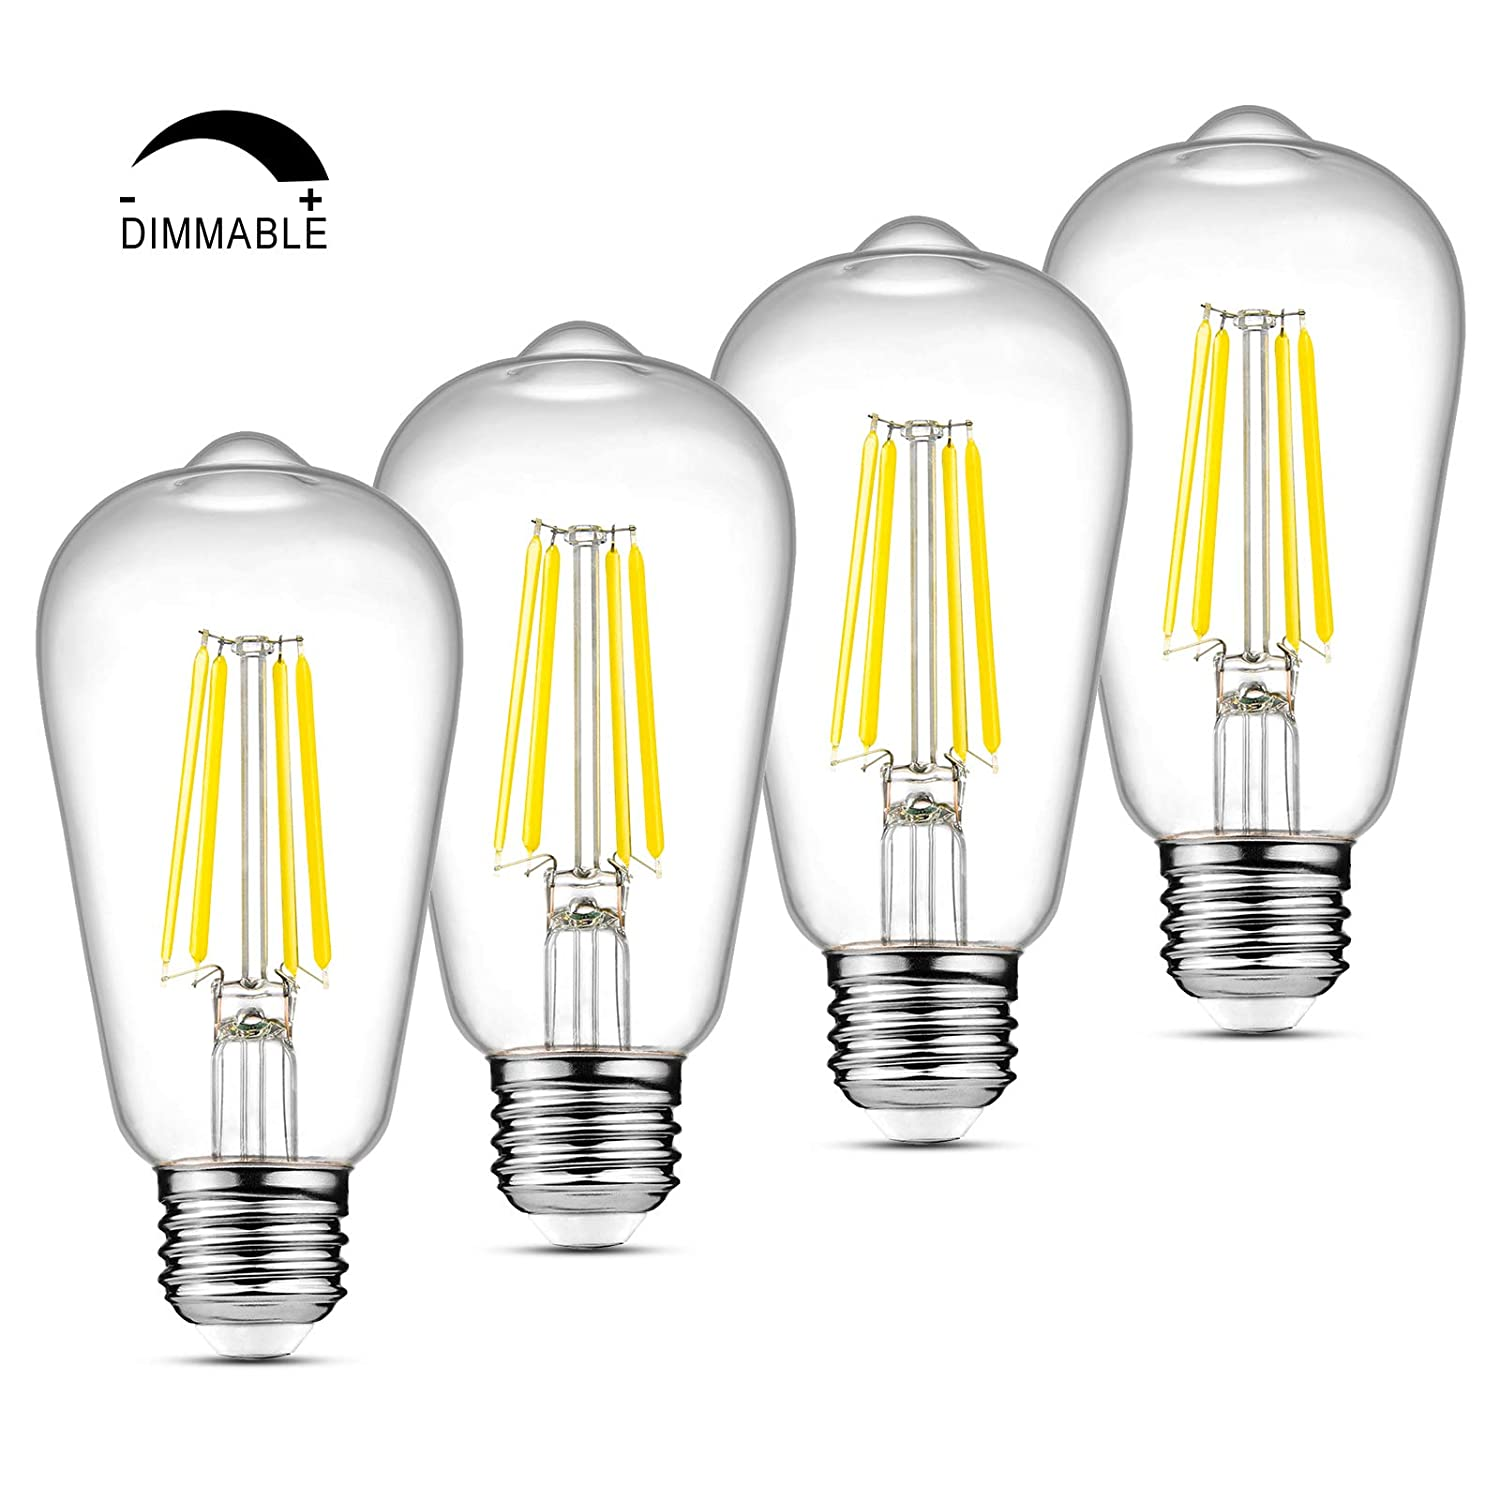 Ascher LED Edison Bulbs 6W High Brightness Daylight White 4000K 700 Lumens Non-Dimmable E26 Base Equivalent 60W Clear Glass ST58 Vintage LED Filament Bulbs 4 Packs